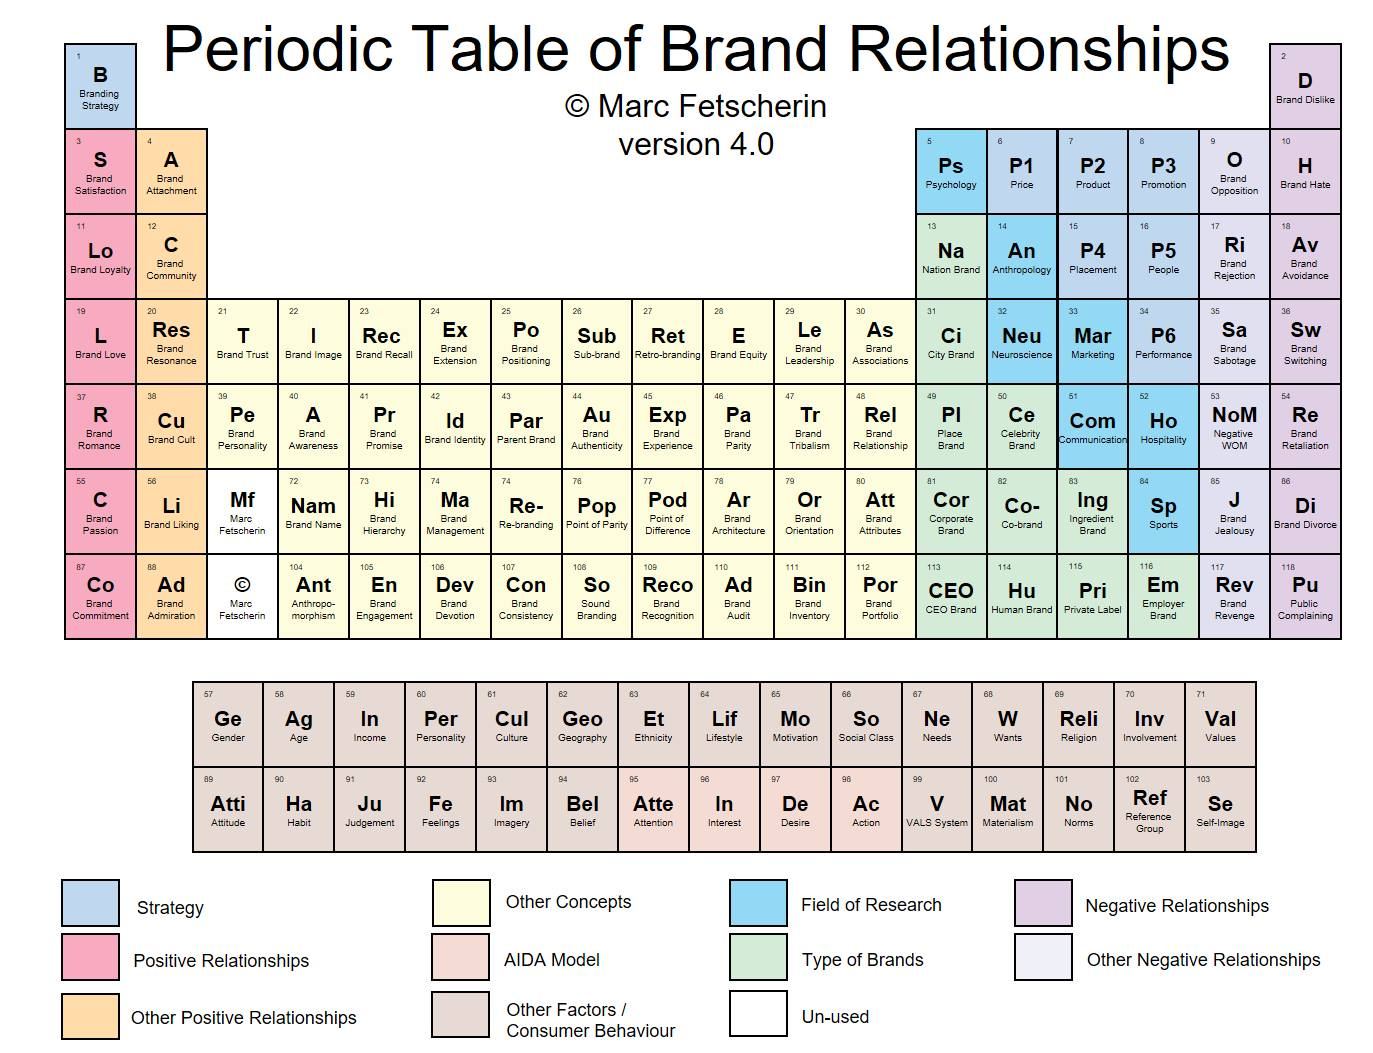 The periodic table of brand relationships innapiven urtaz Choice Image